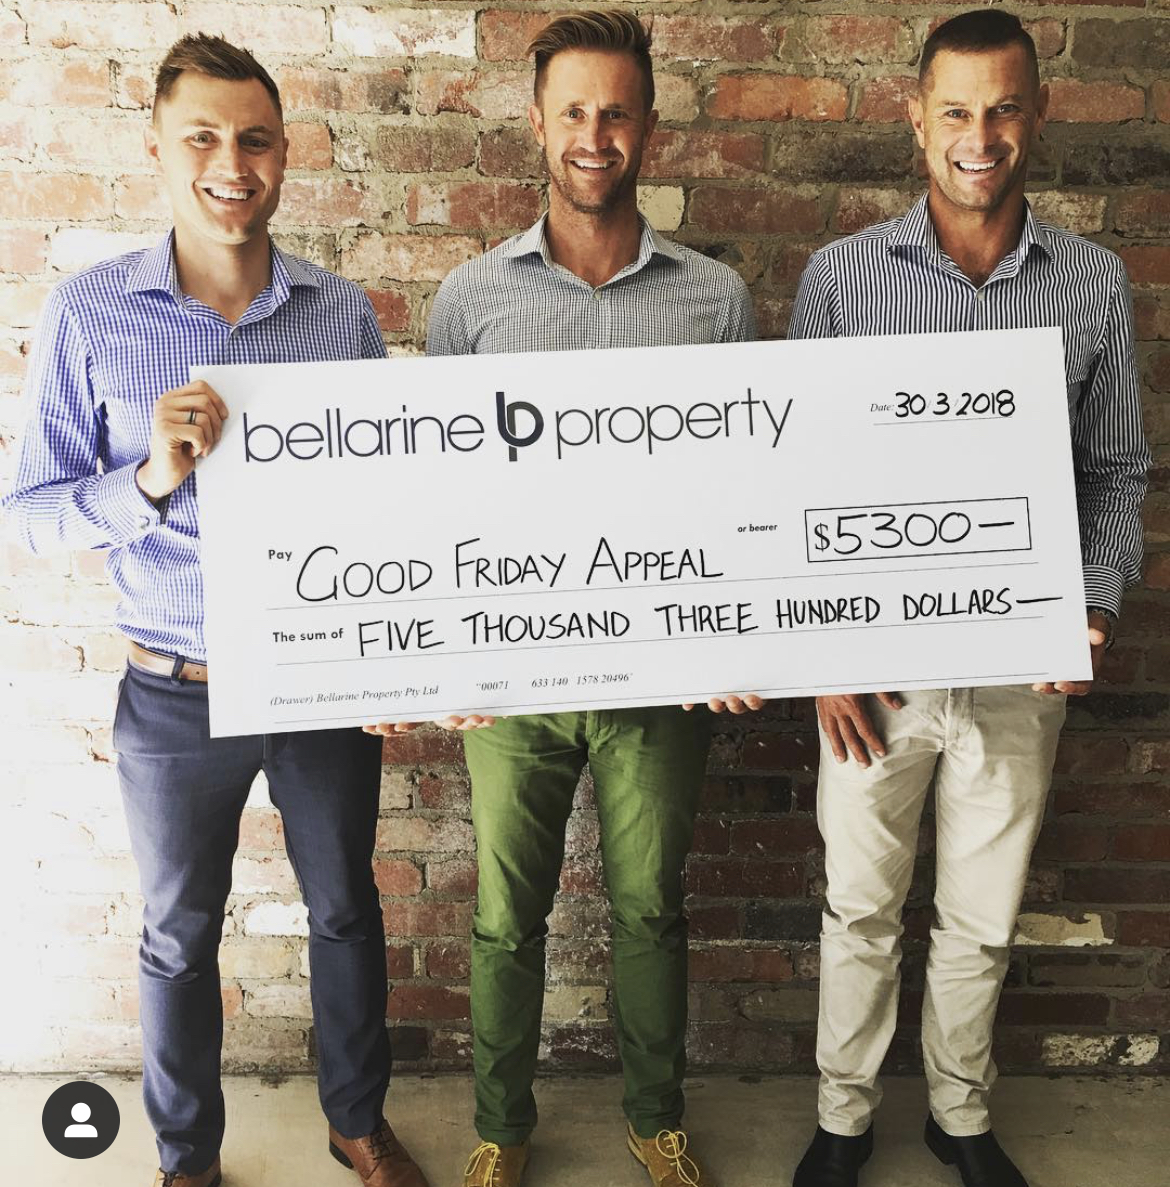 $5300 2018 Good Friday Appeal Donation